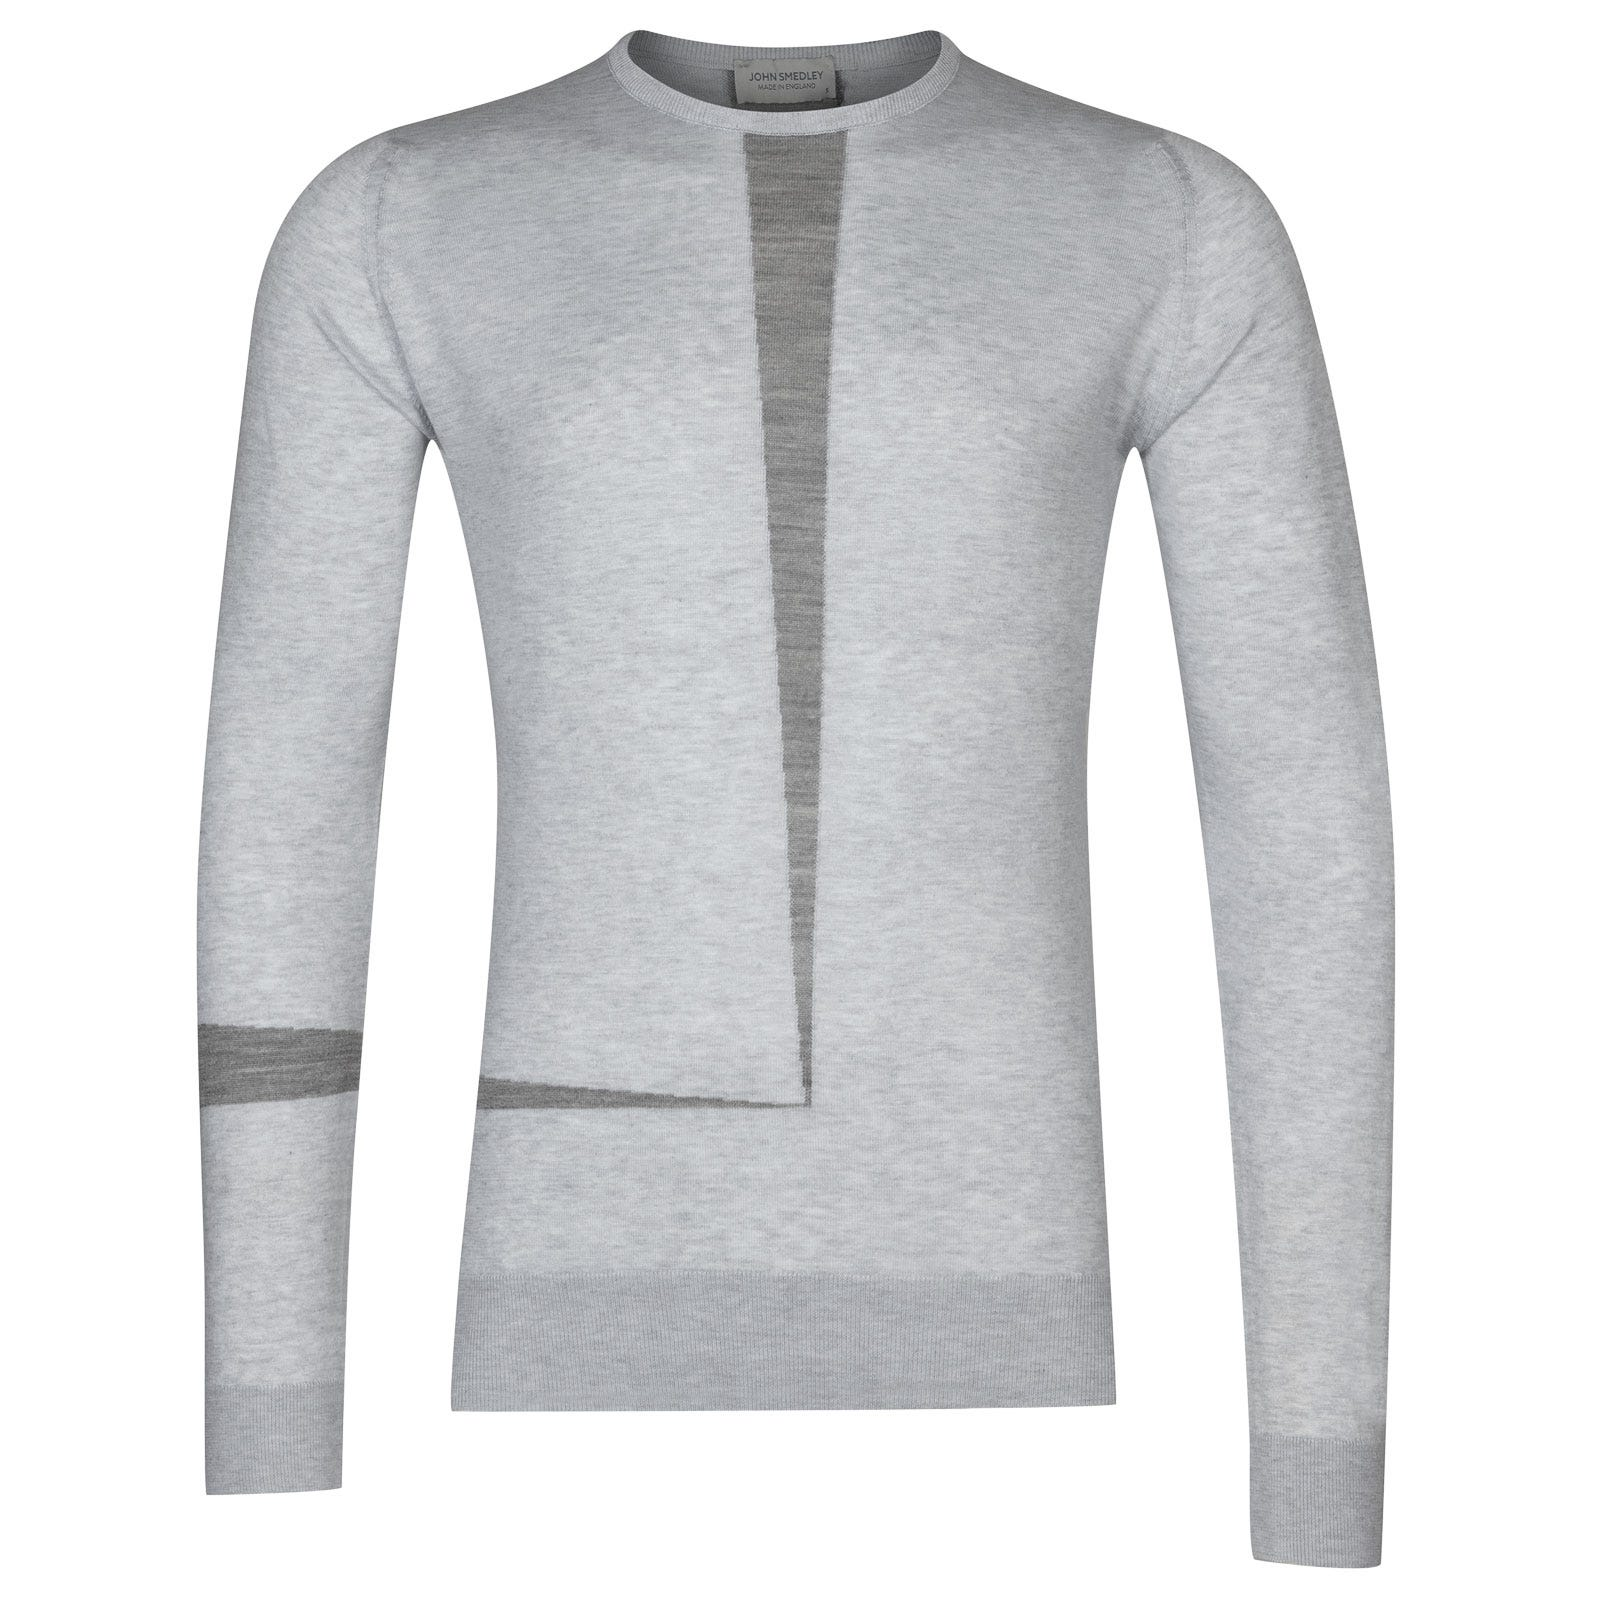 John Smedley Denys in Feather Grey-S